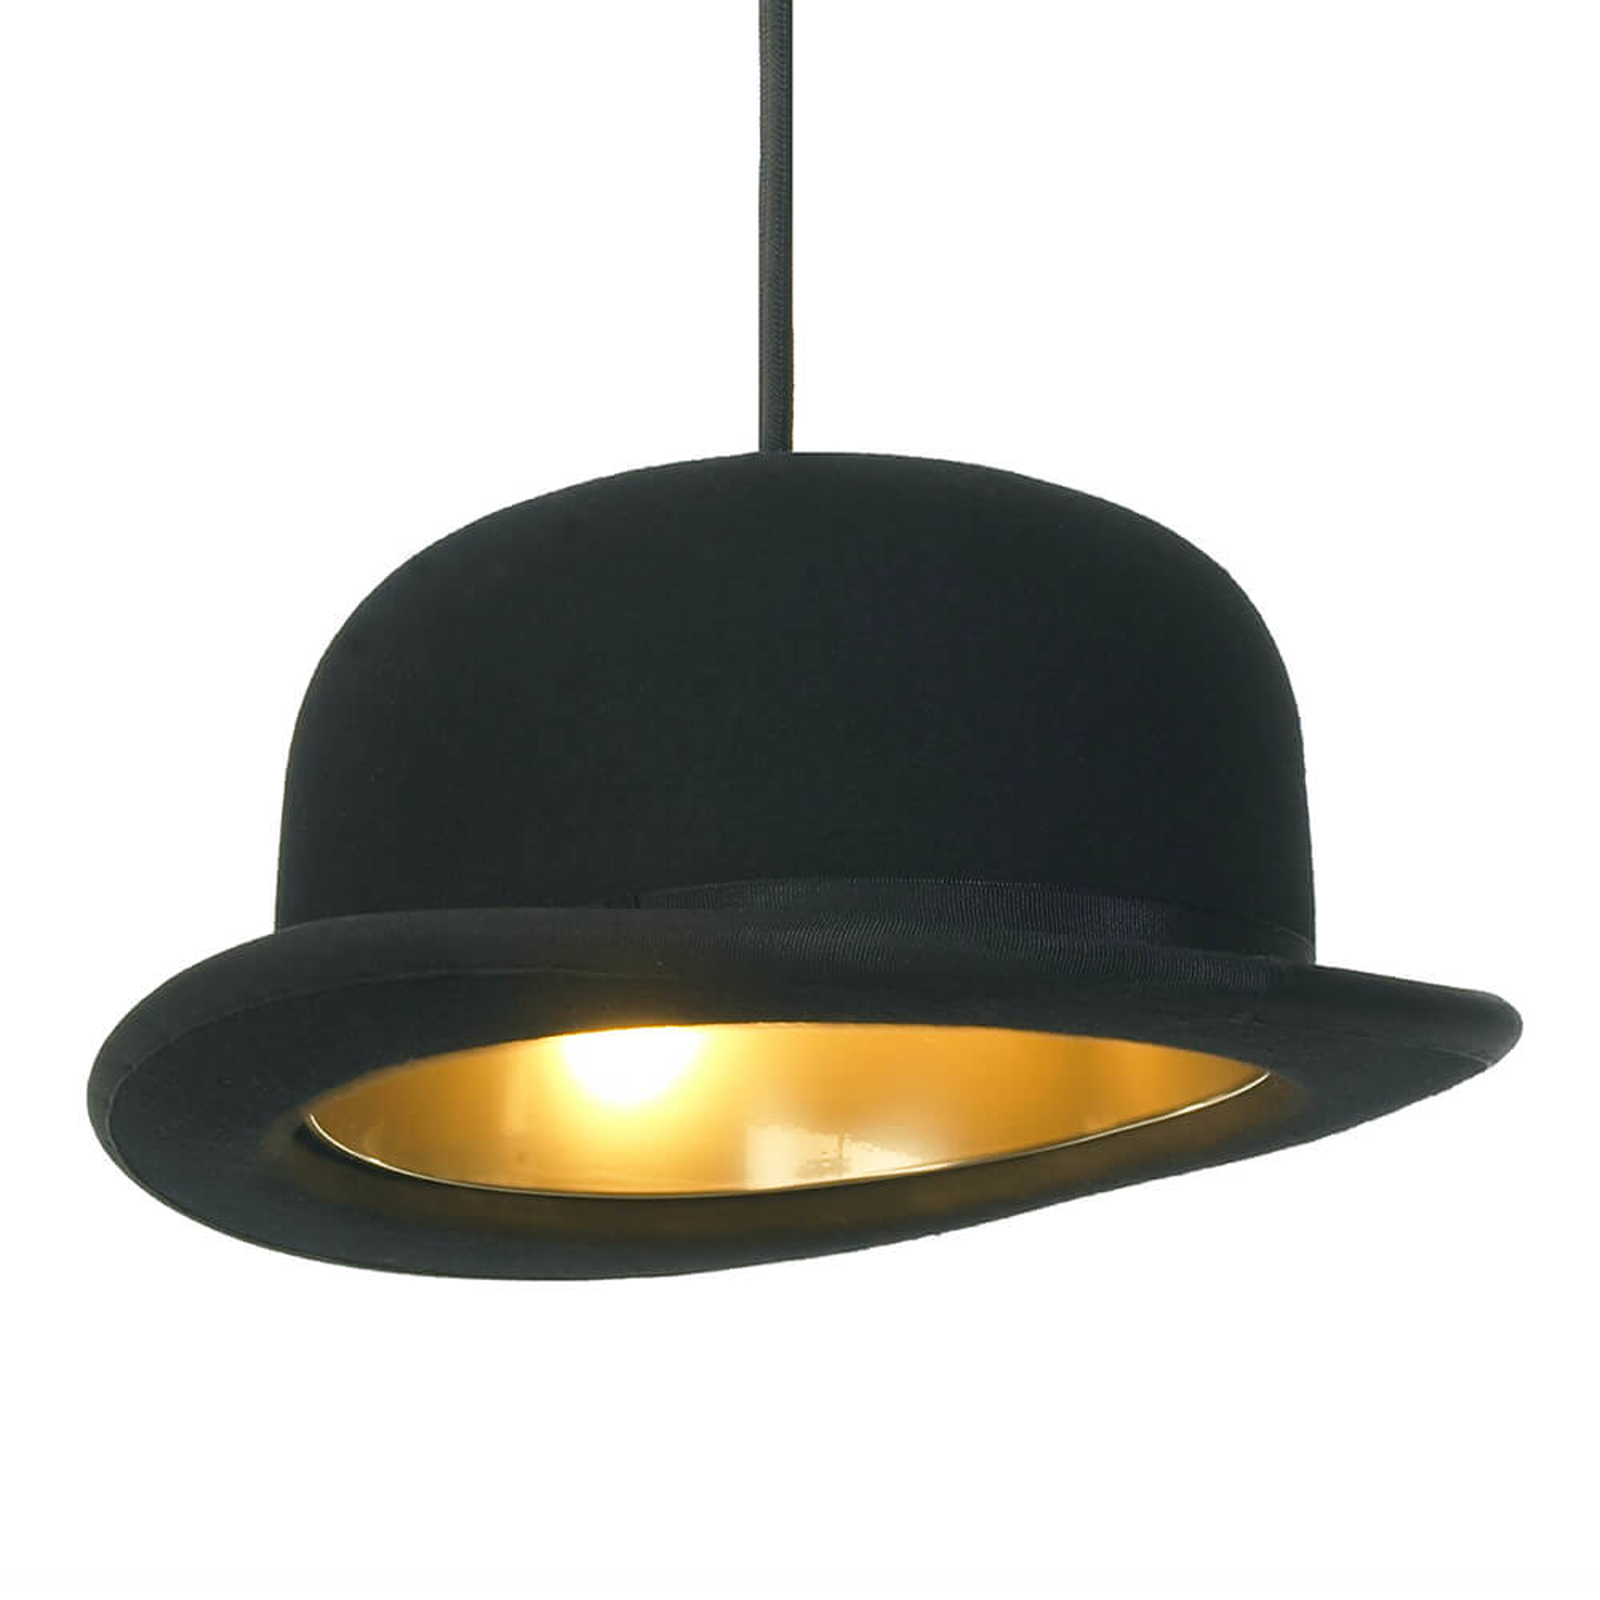 Innermost Jeeves - design-hanglamp in hoedvorm